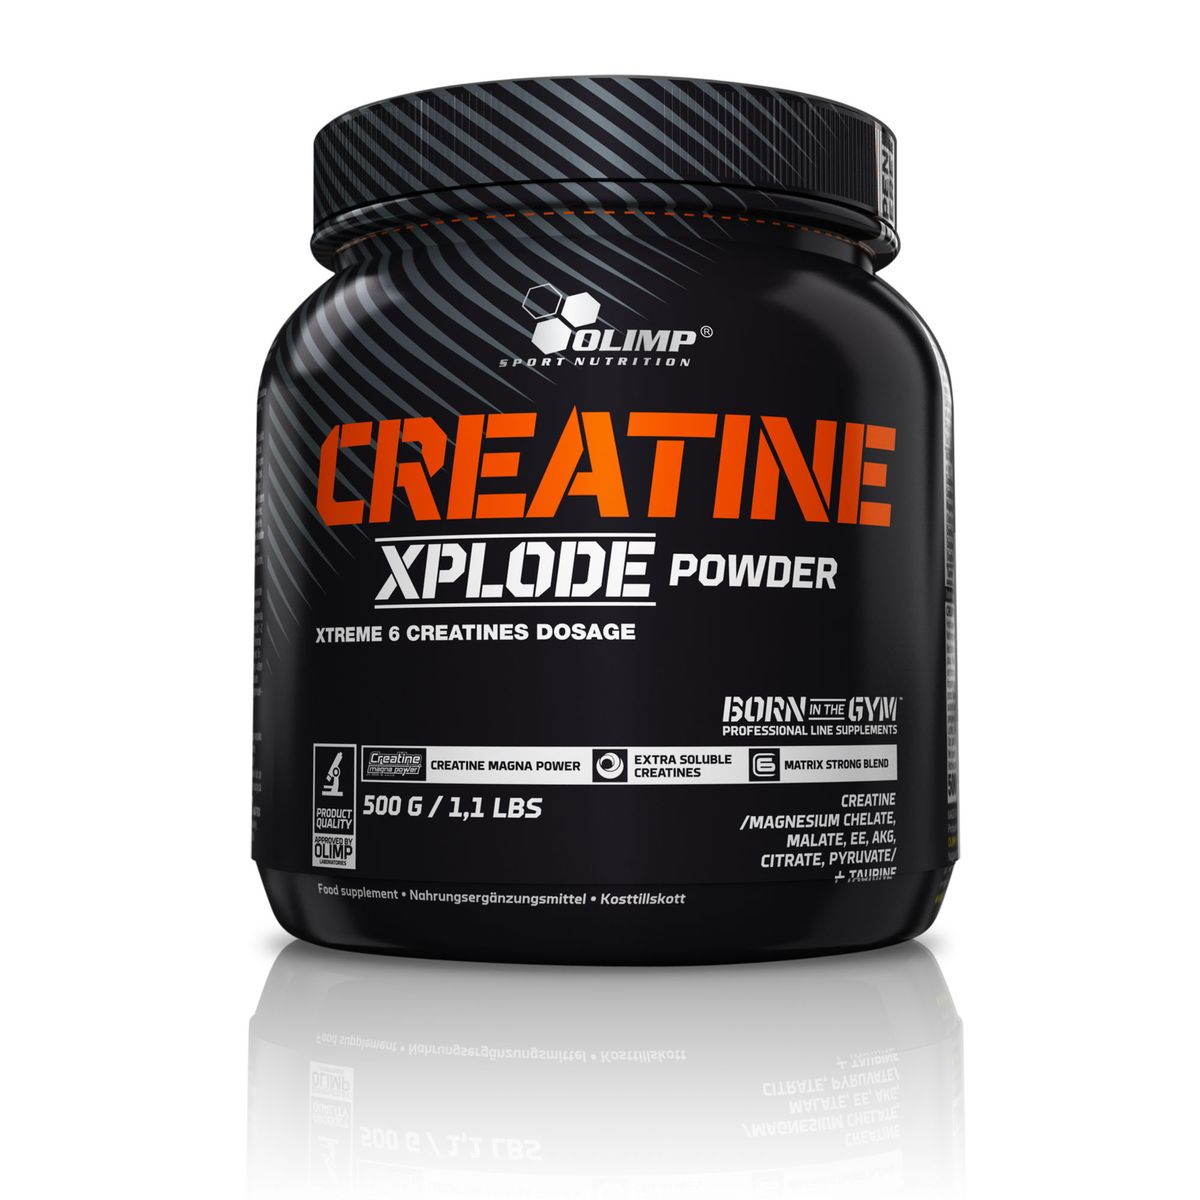 Креатин Olimp Sport Nutrition Creatine Xplode Powder, апельсин, 500 г wintel w8 mini pc windows 10 android 4 4 intel quad core 2gb 32gb hdmi